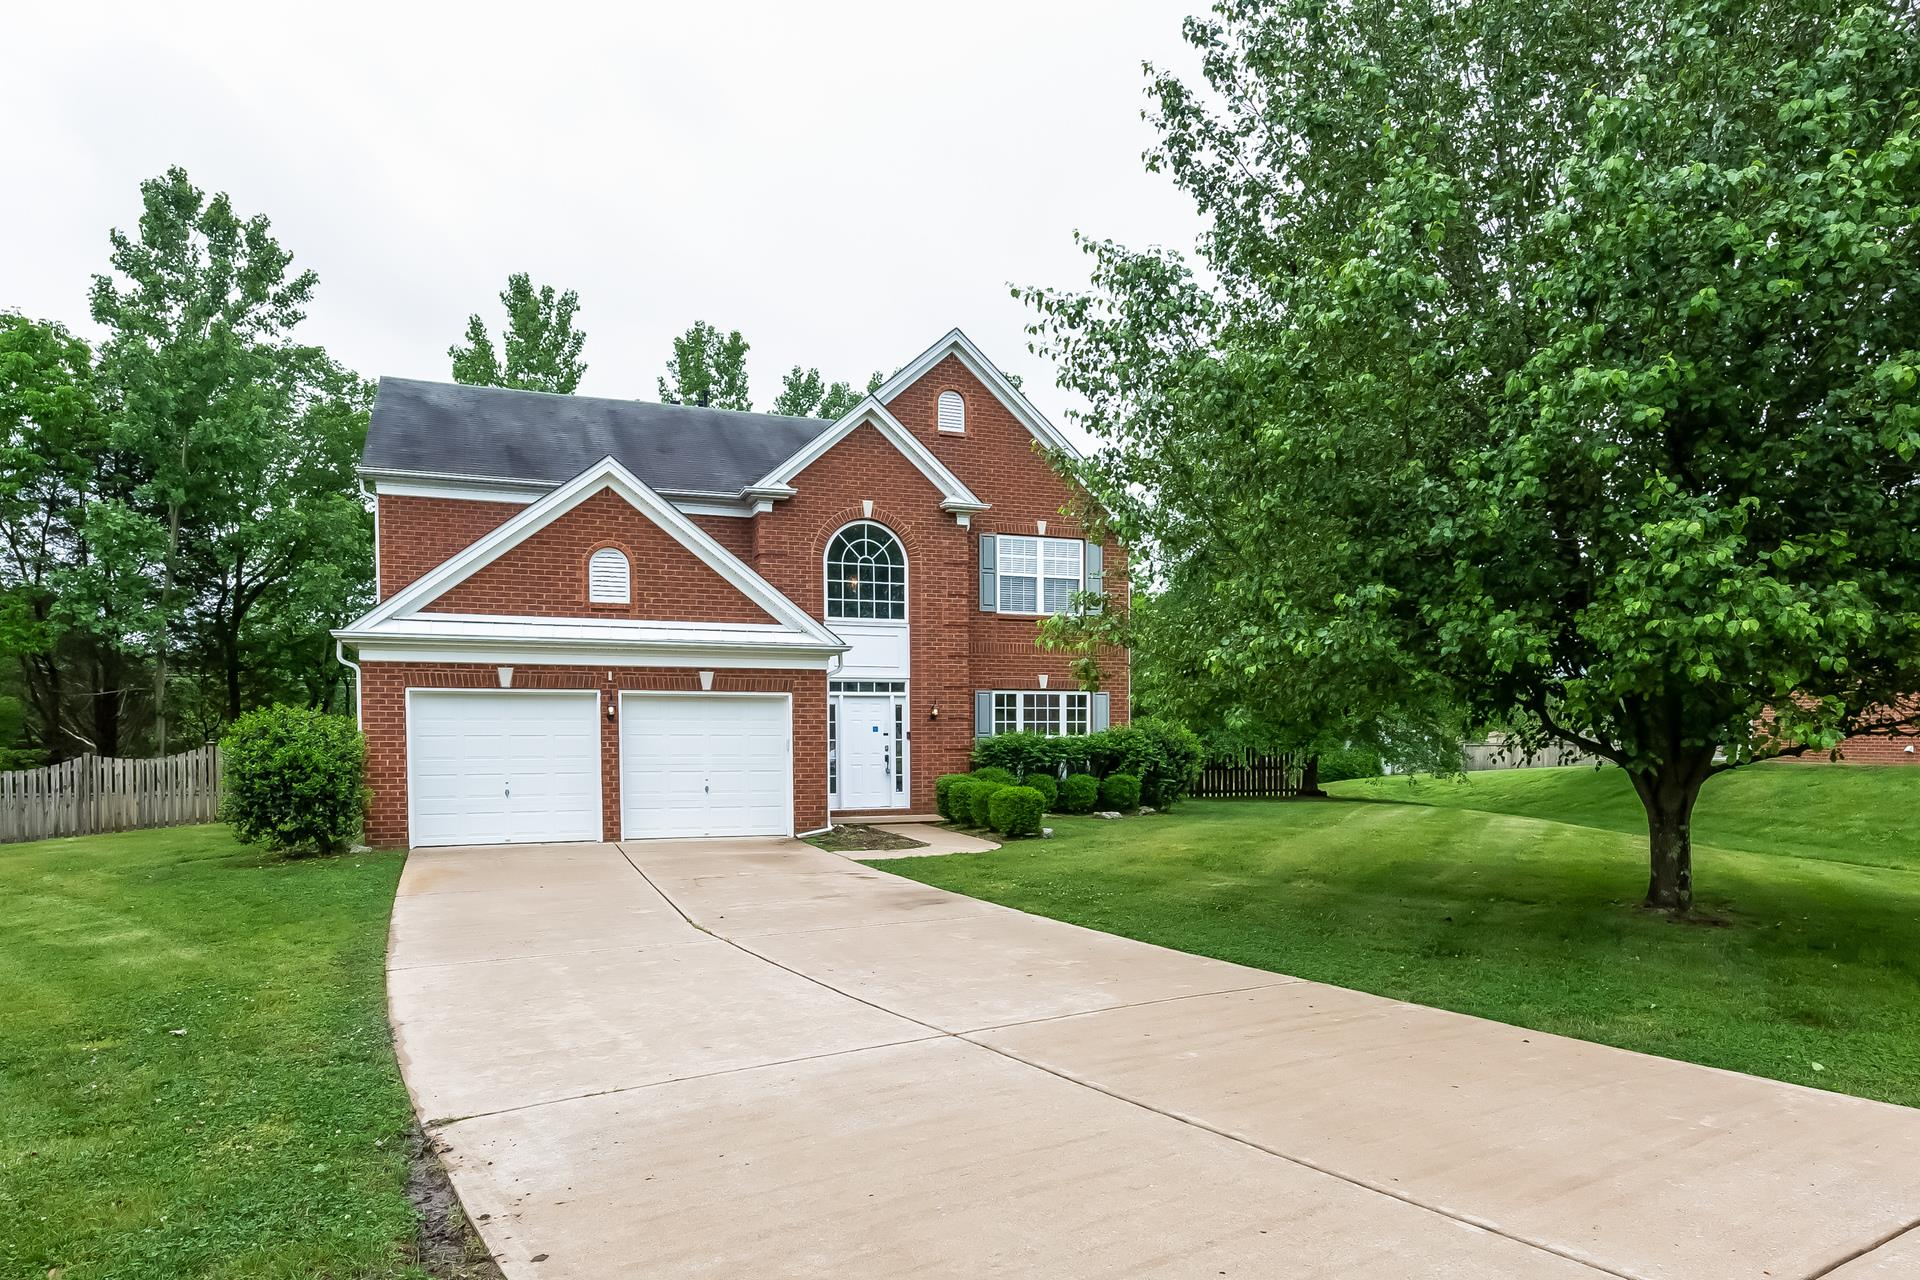 2502 Betsy Ross Ct, Mount Juliet, Tennessee